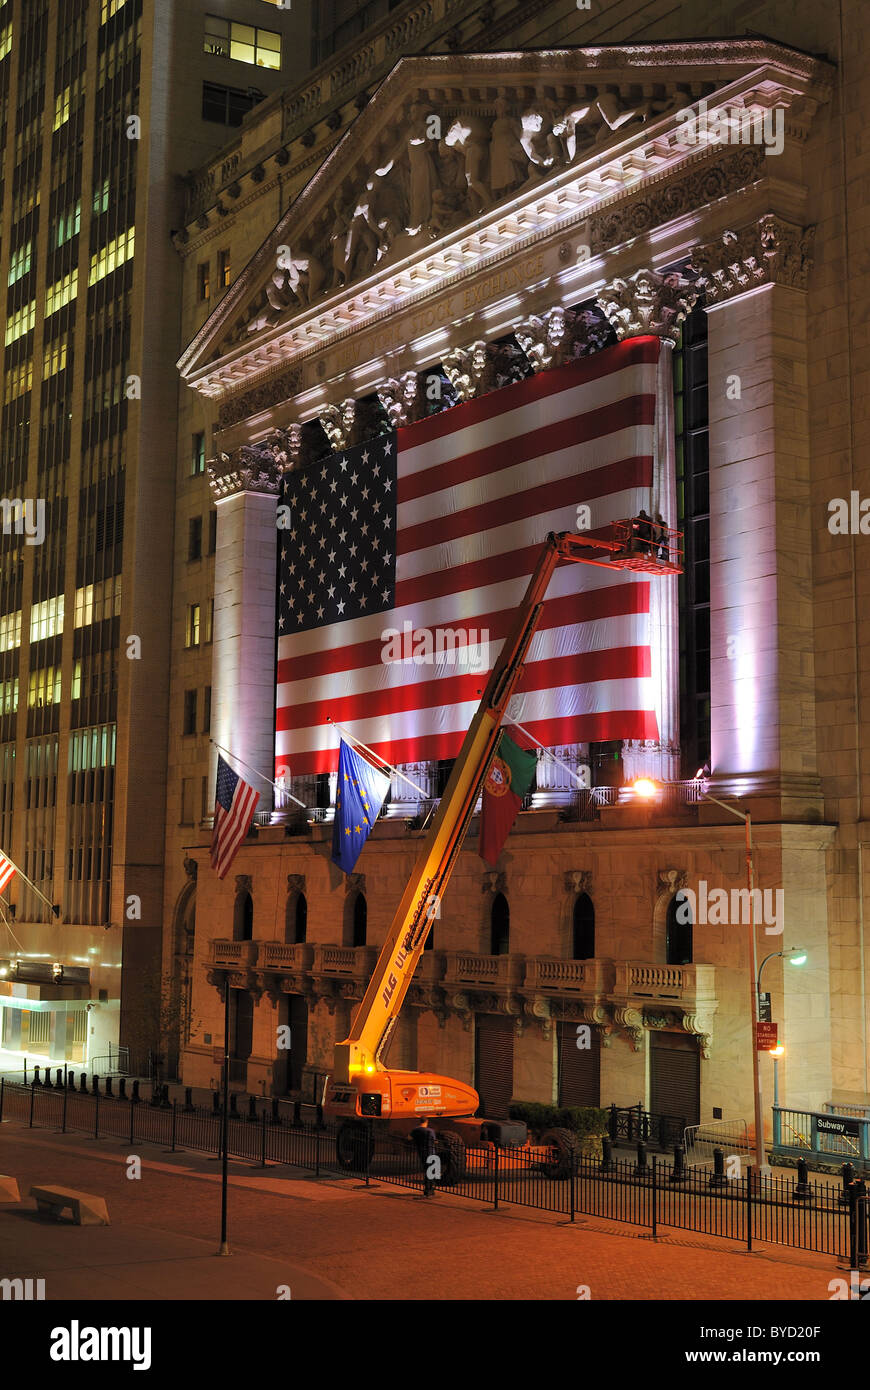 Crane and workers putting up large flags on the New York Stock Exchange in New York City. May 26, 2010. - Stock Image